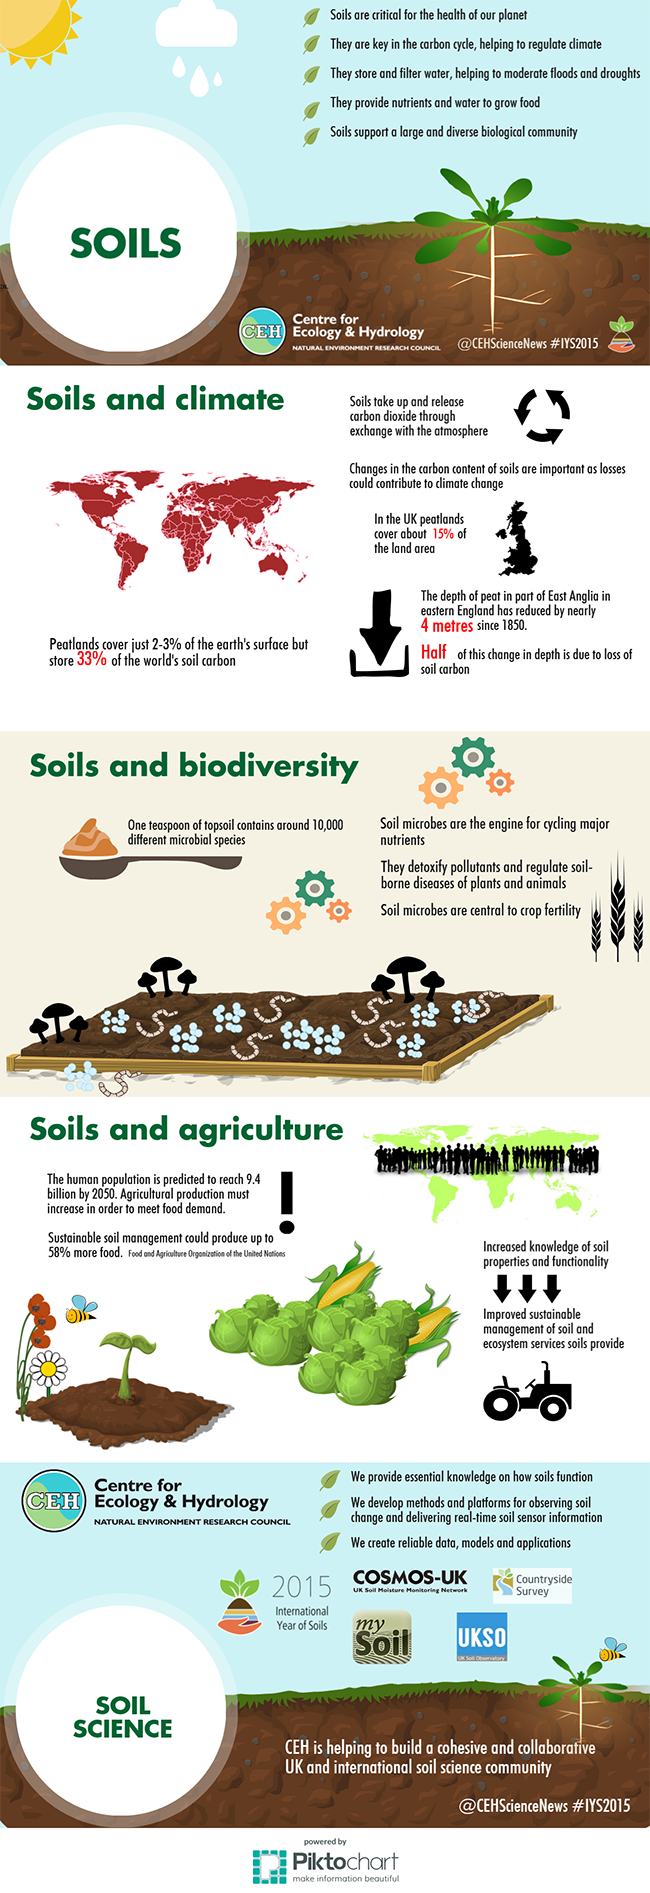 Soils and Soil Science at CEH infographic